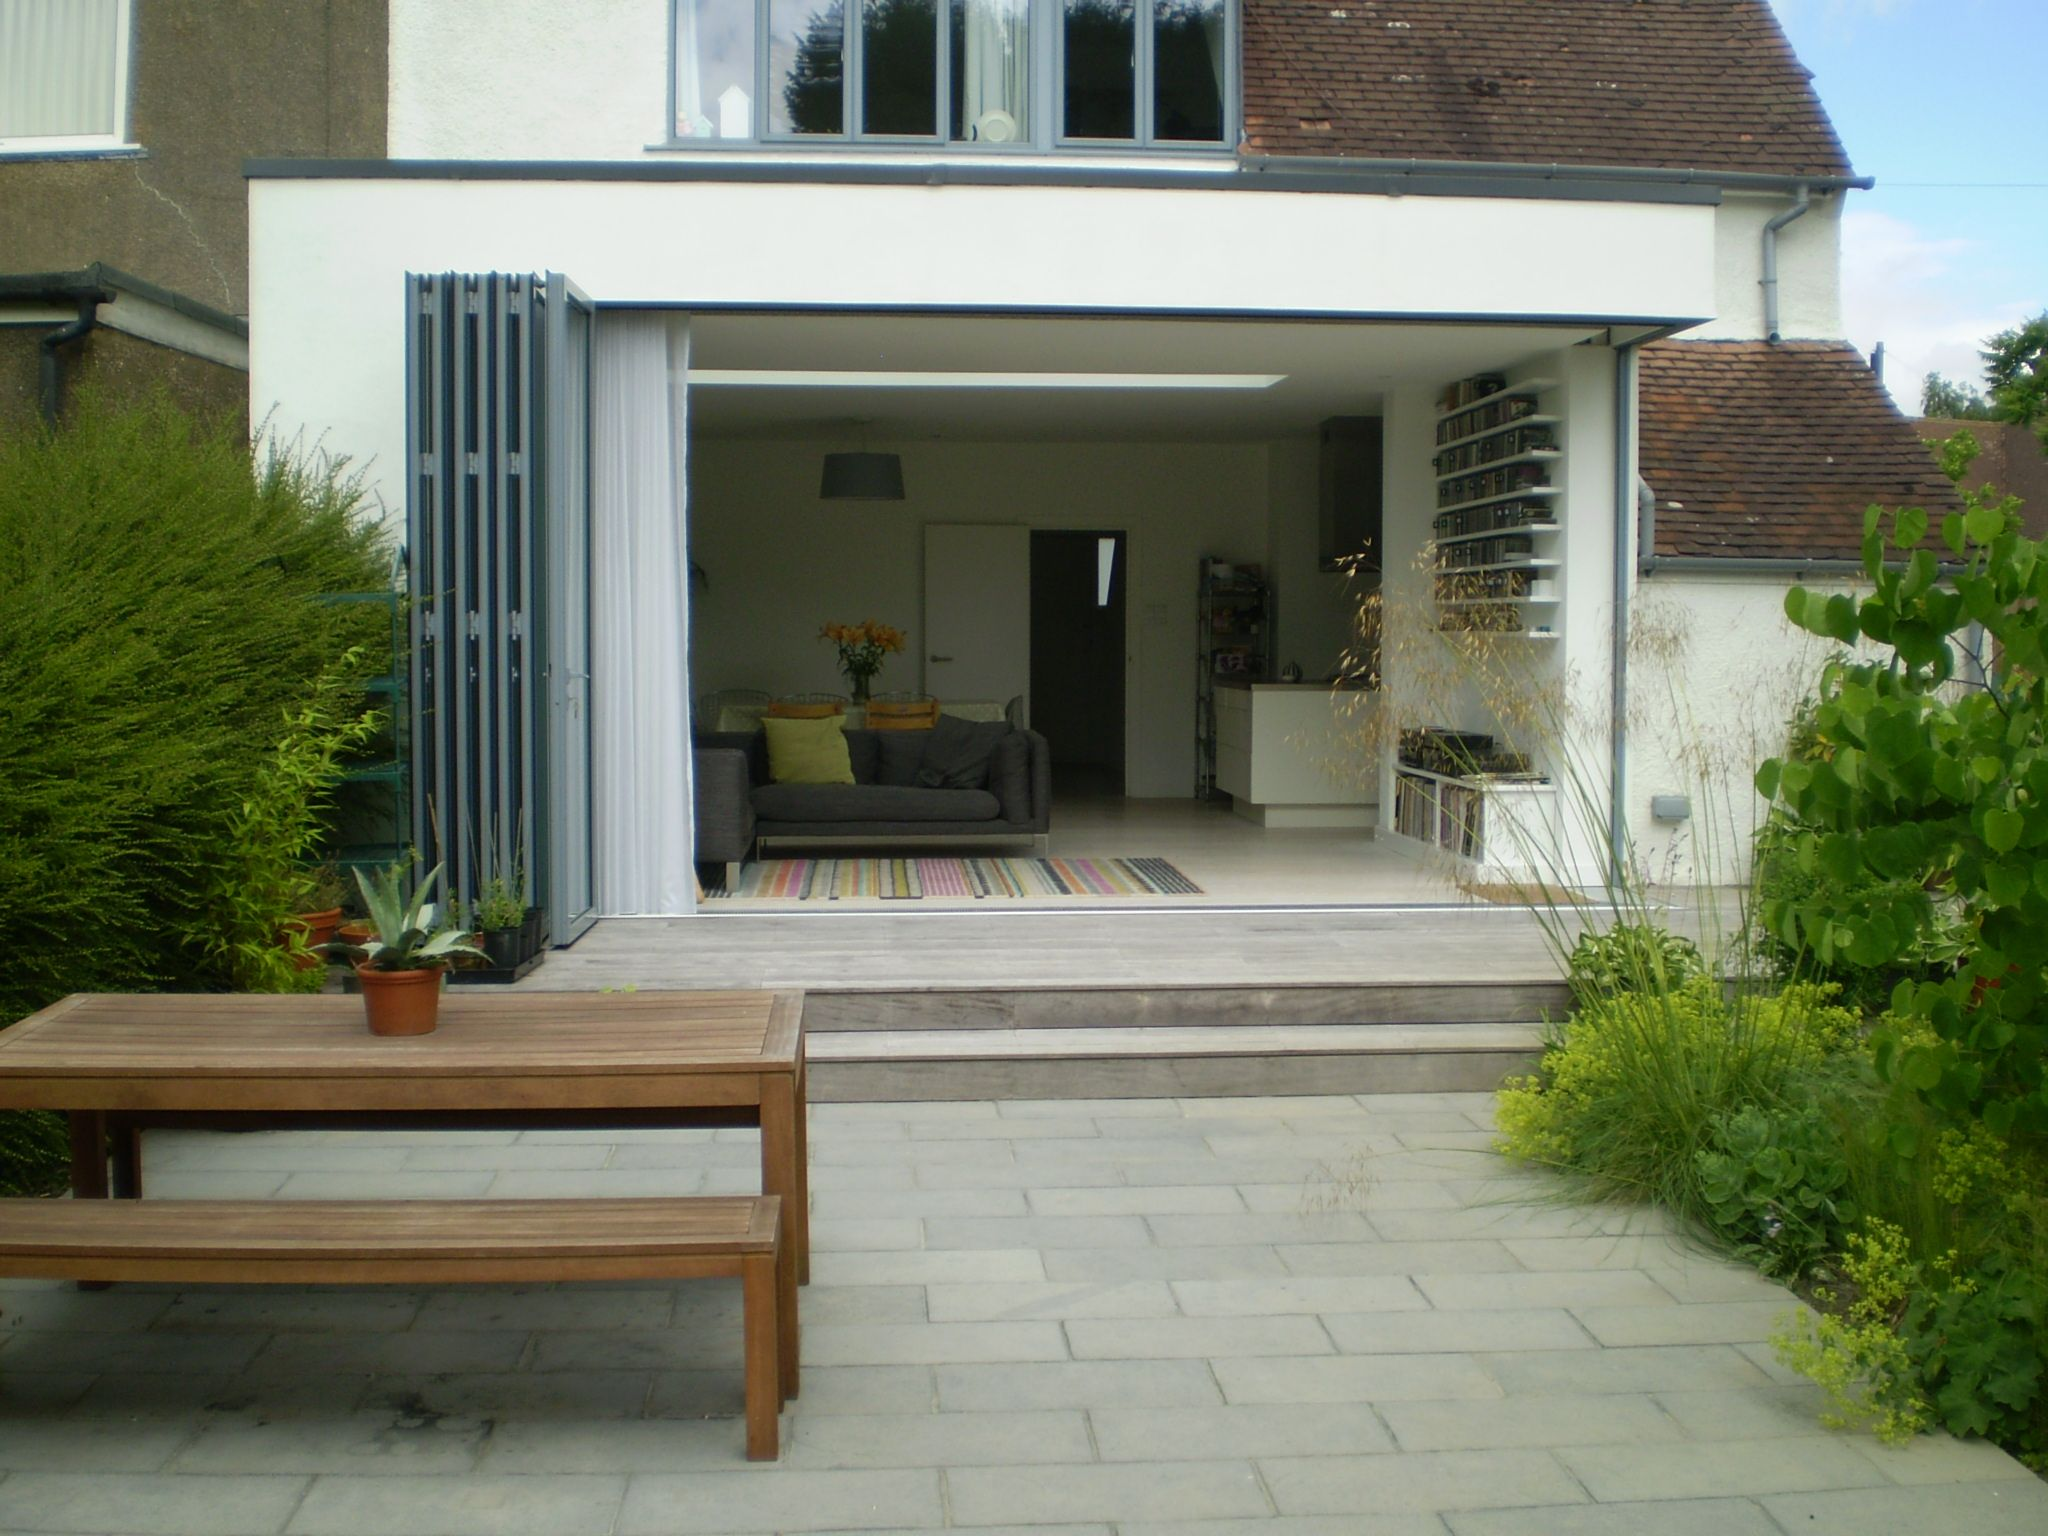 same tiles inside as outside bifolding doors Google Search